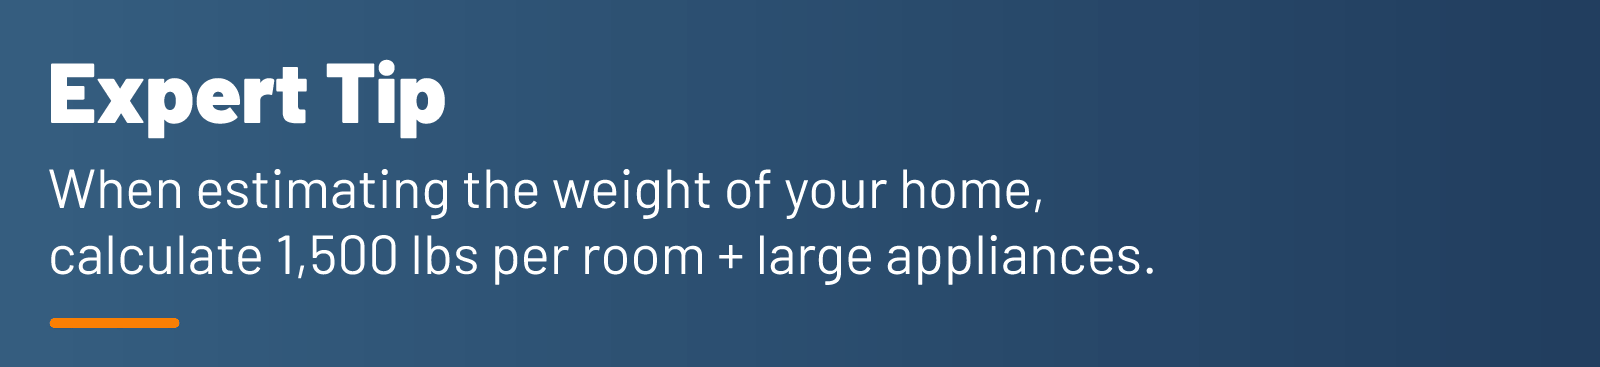 Expert Tip - When estimating the weight of your home, calculate 1,500 lbs per room + large appliances.